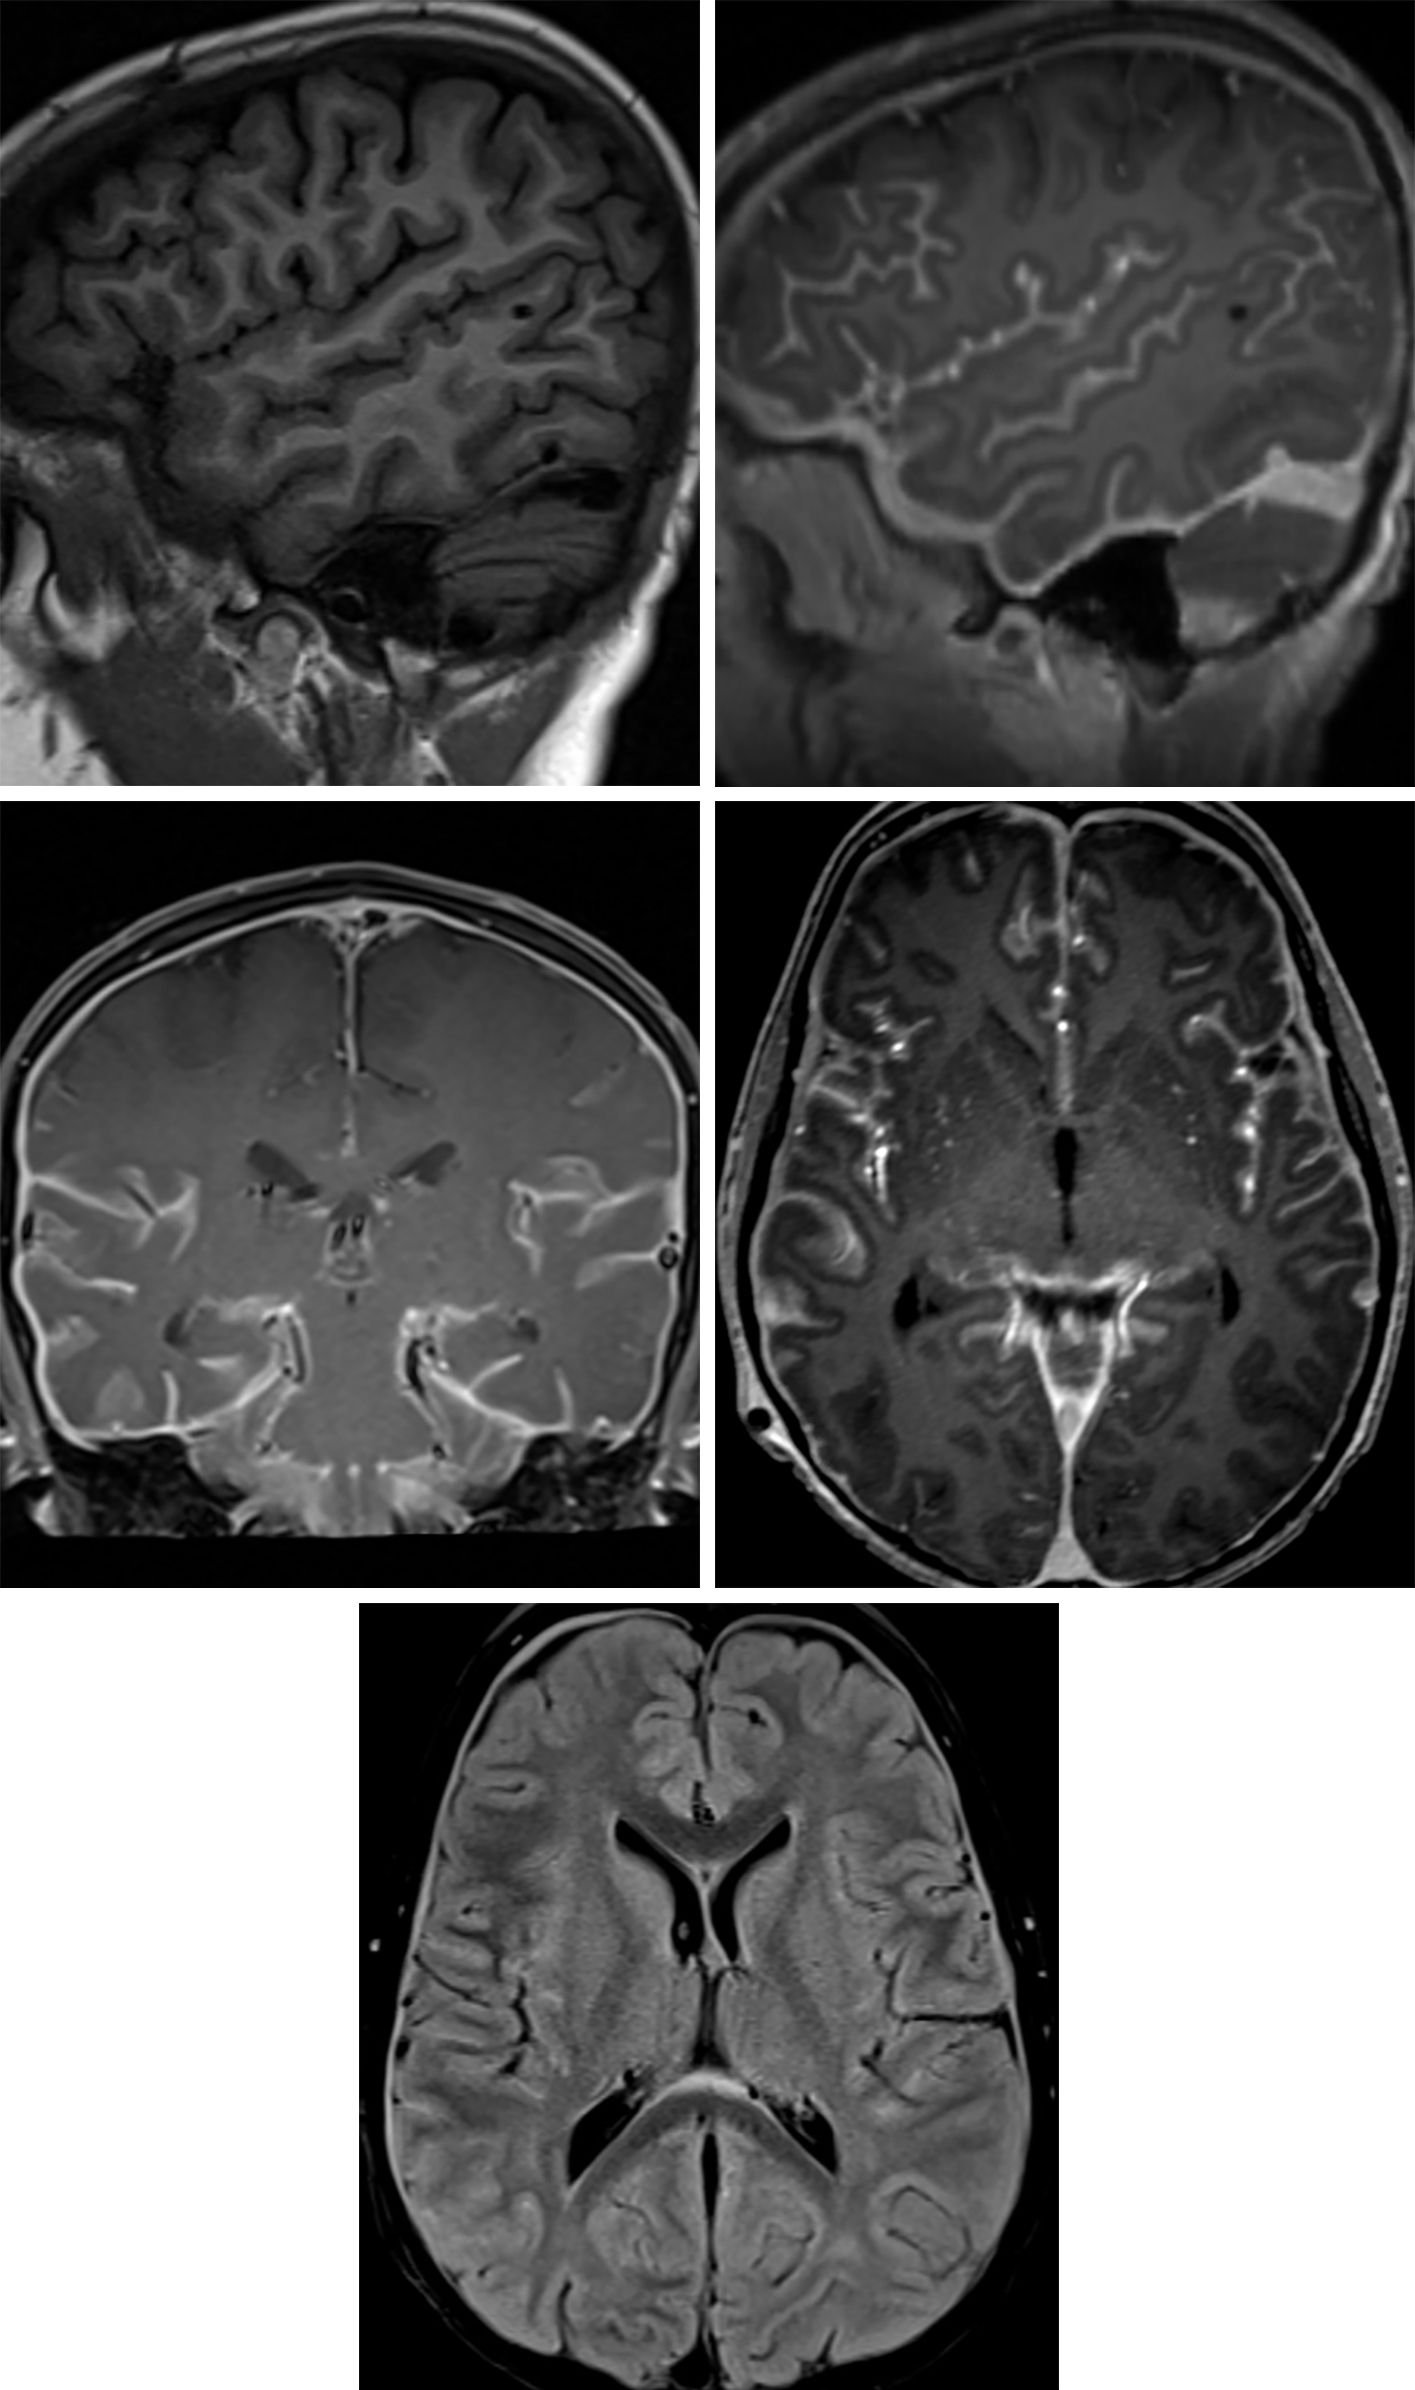 Figure 8: The difference between sagittal T1-weighted precontrast (top left) and postcontrast (top right) images is striking in this patient with leptomeningeal metastatic disease, with diffuse enhancement throughout the cerebral sulci that is also visible on coronal (middle left) and axial (middle right) contrast-enhanced images. Scattered hyperintense sulci are also visible on FLAIR imaging (bottom), along with reactive or metastatic thickening of the dura. Leptomeningeal metastatic disease is often very nodular but can sometimes be smooth, as in this patient.